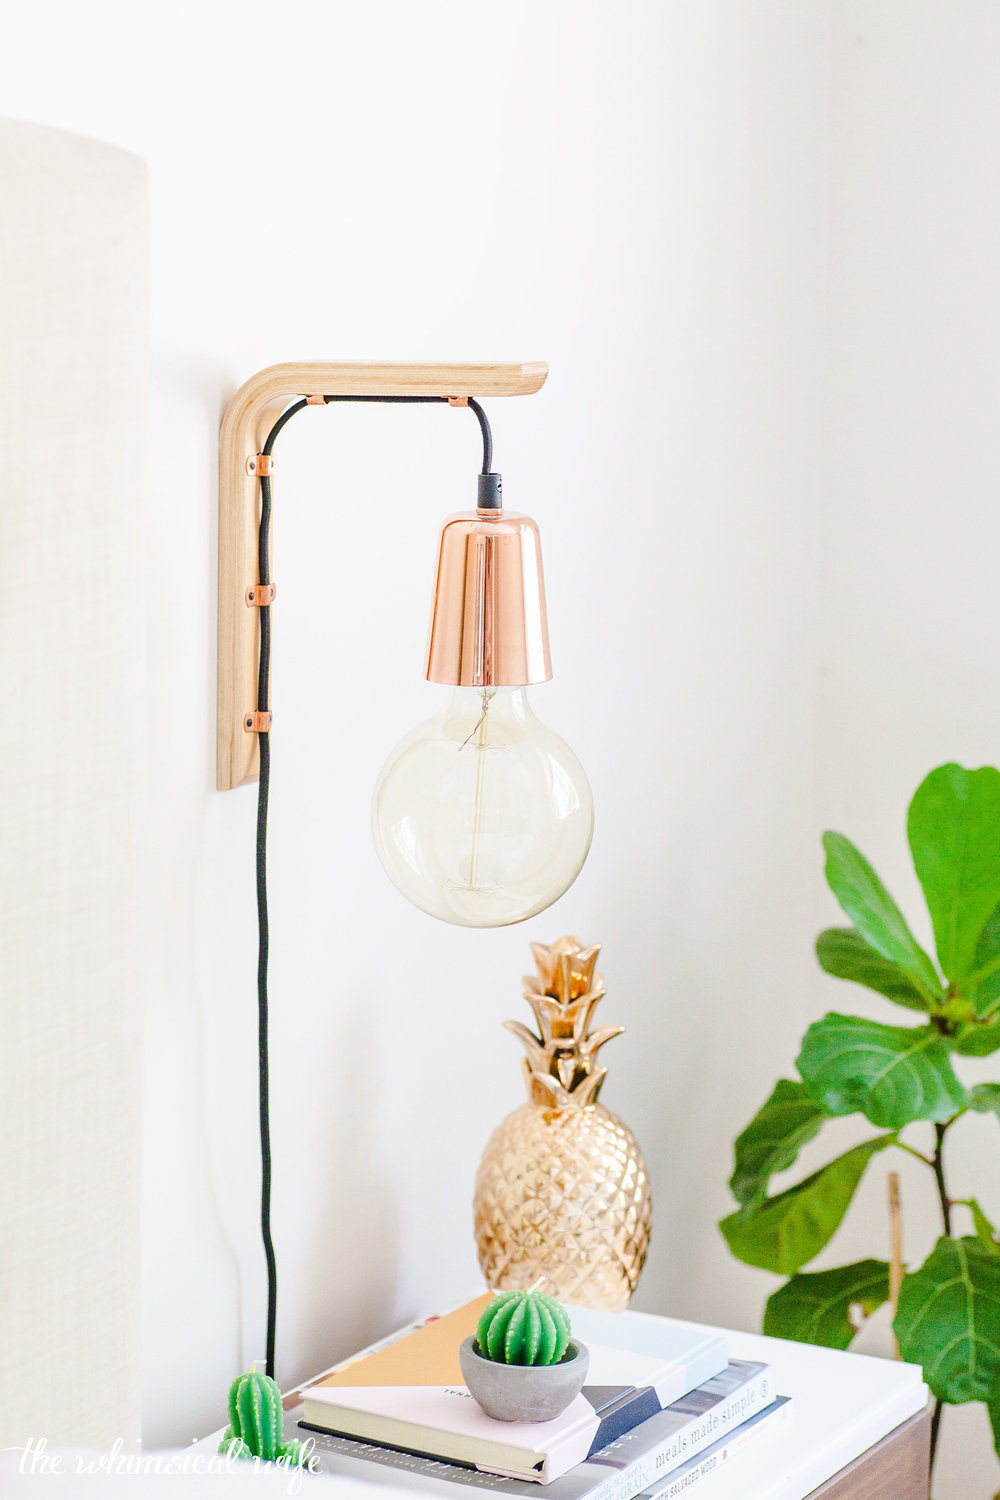 How To Make A Modern Hanging Wooden Wall Bracket Light | The Whimsical Wife